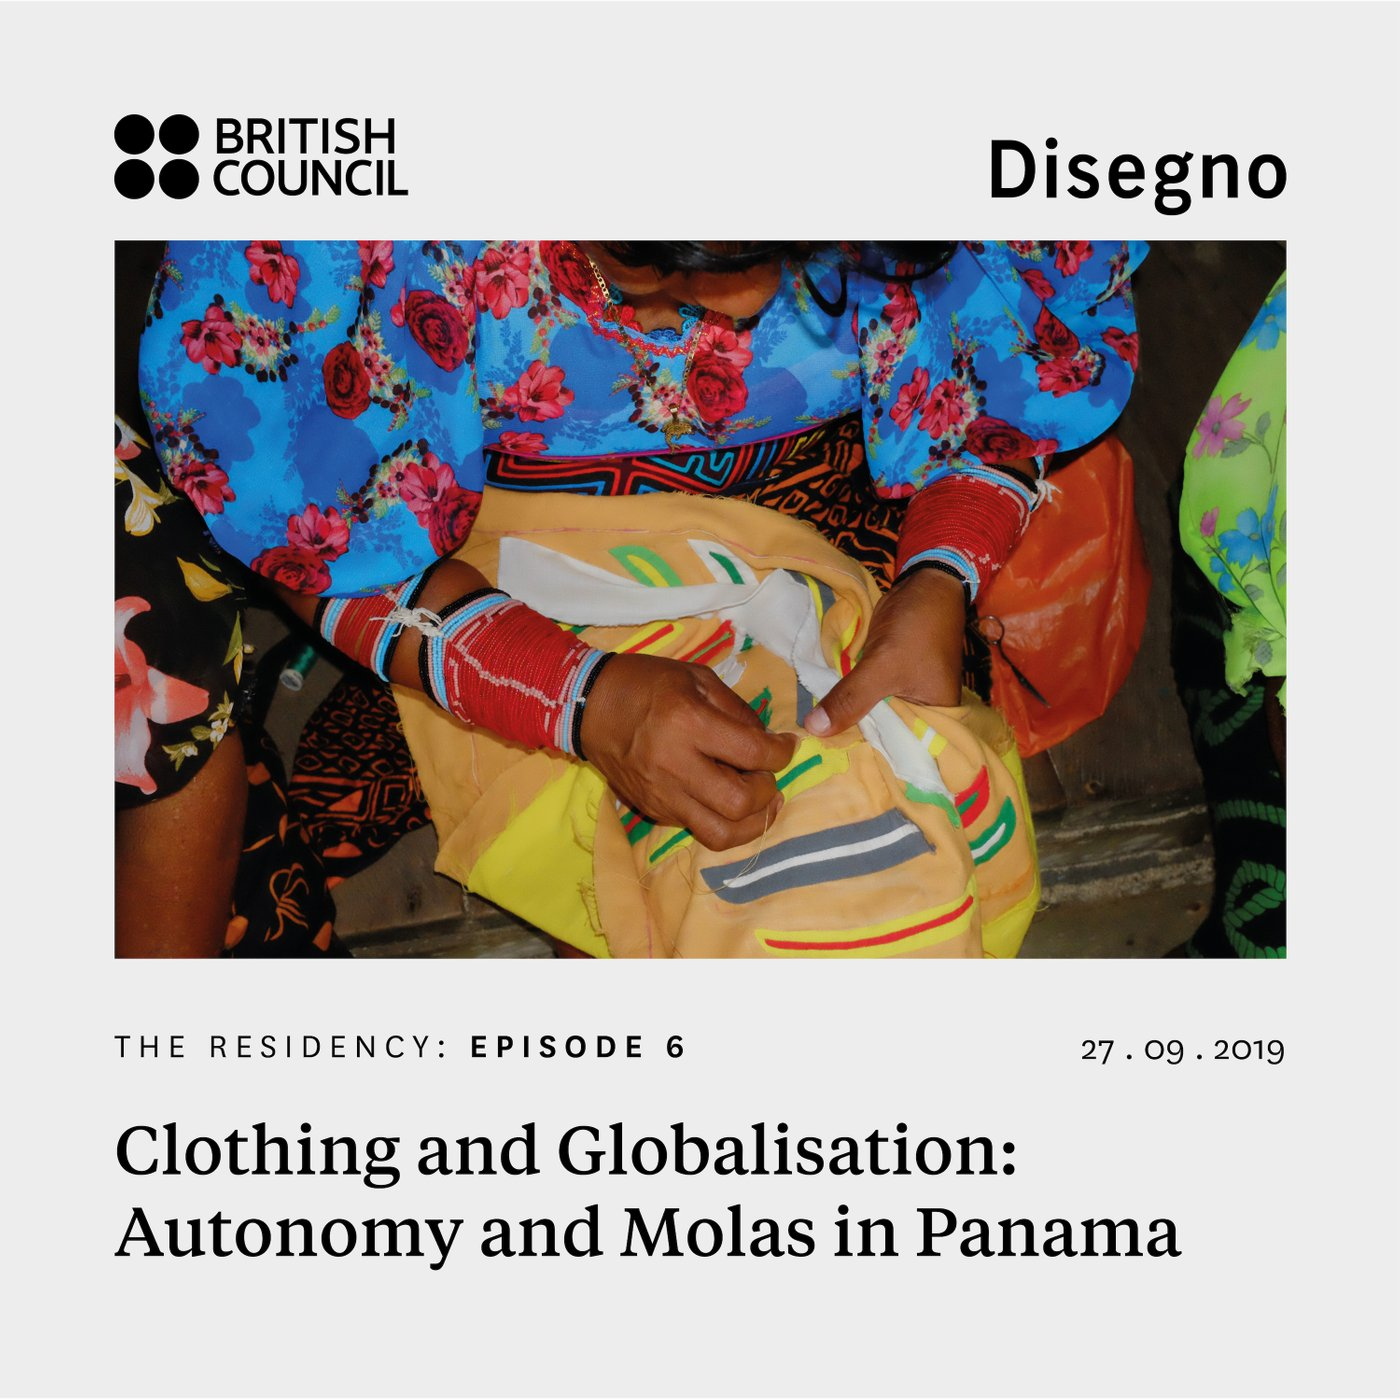 Clothing and Globalisation: Autonomy and Molas in Panama